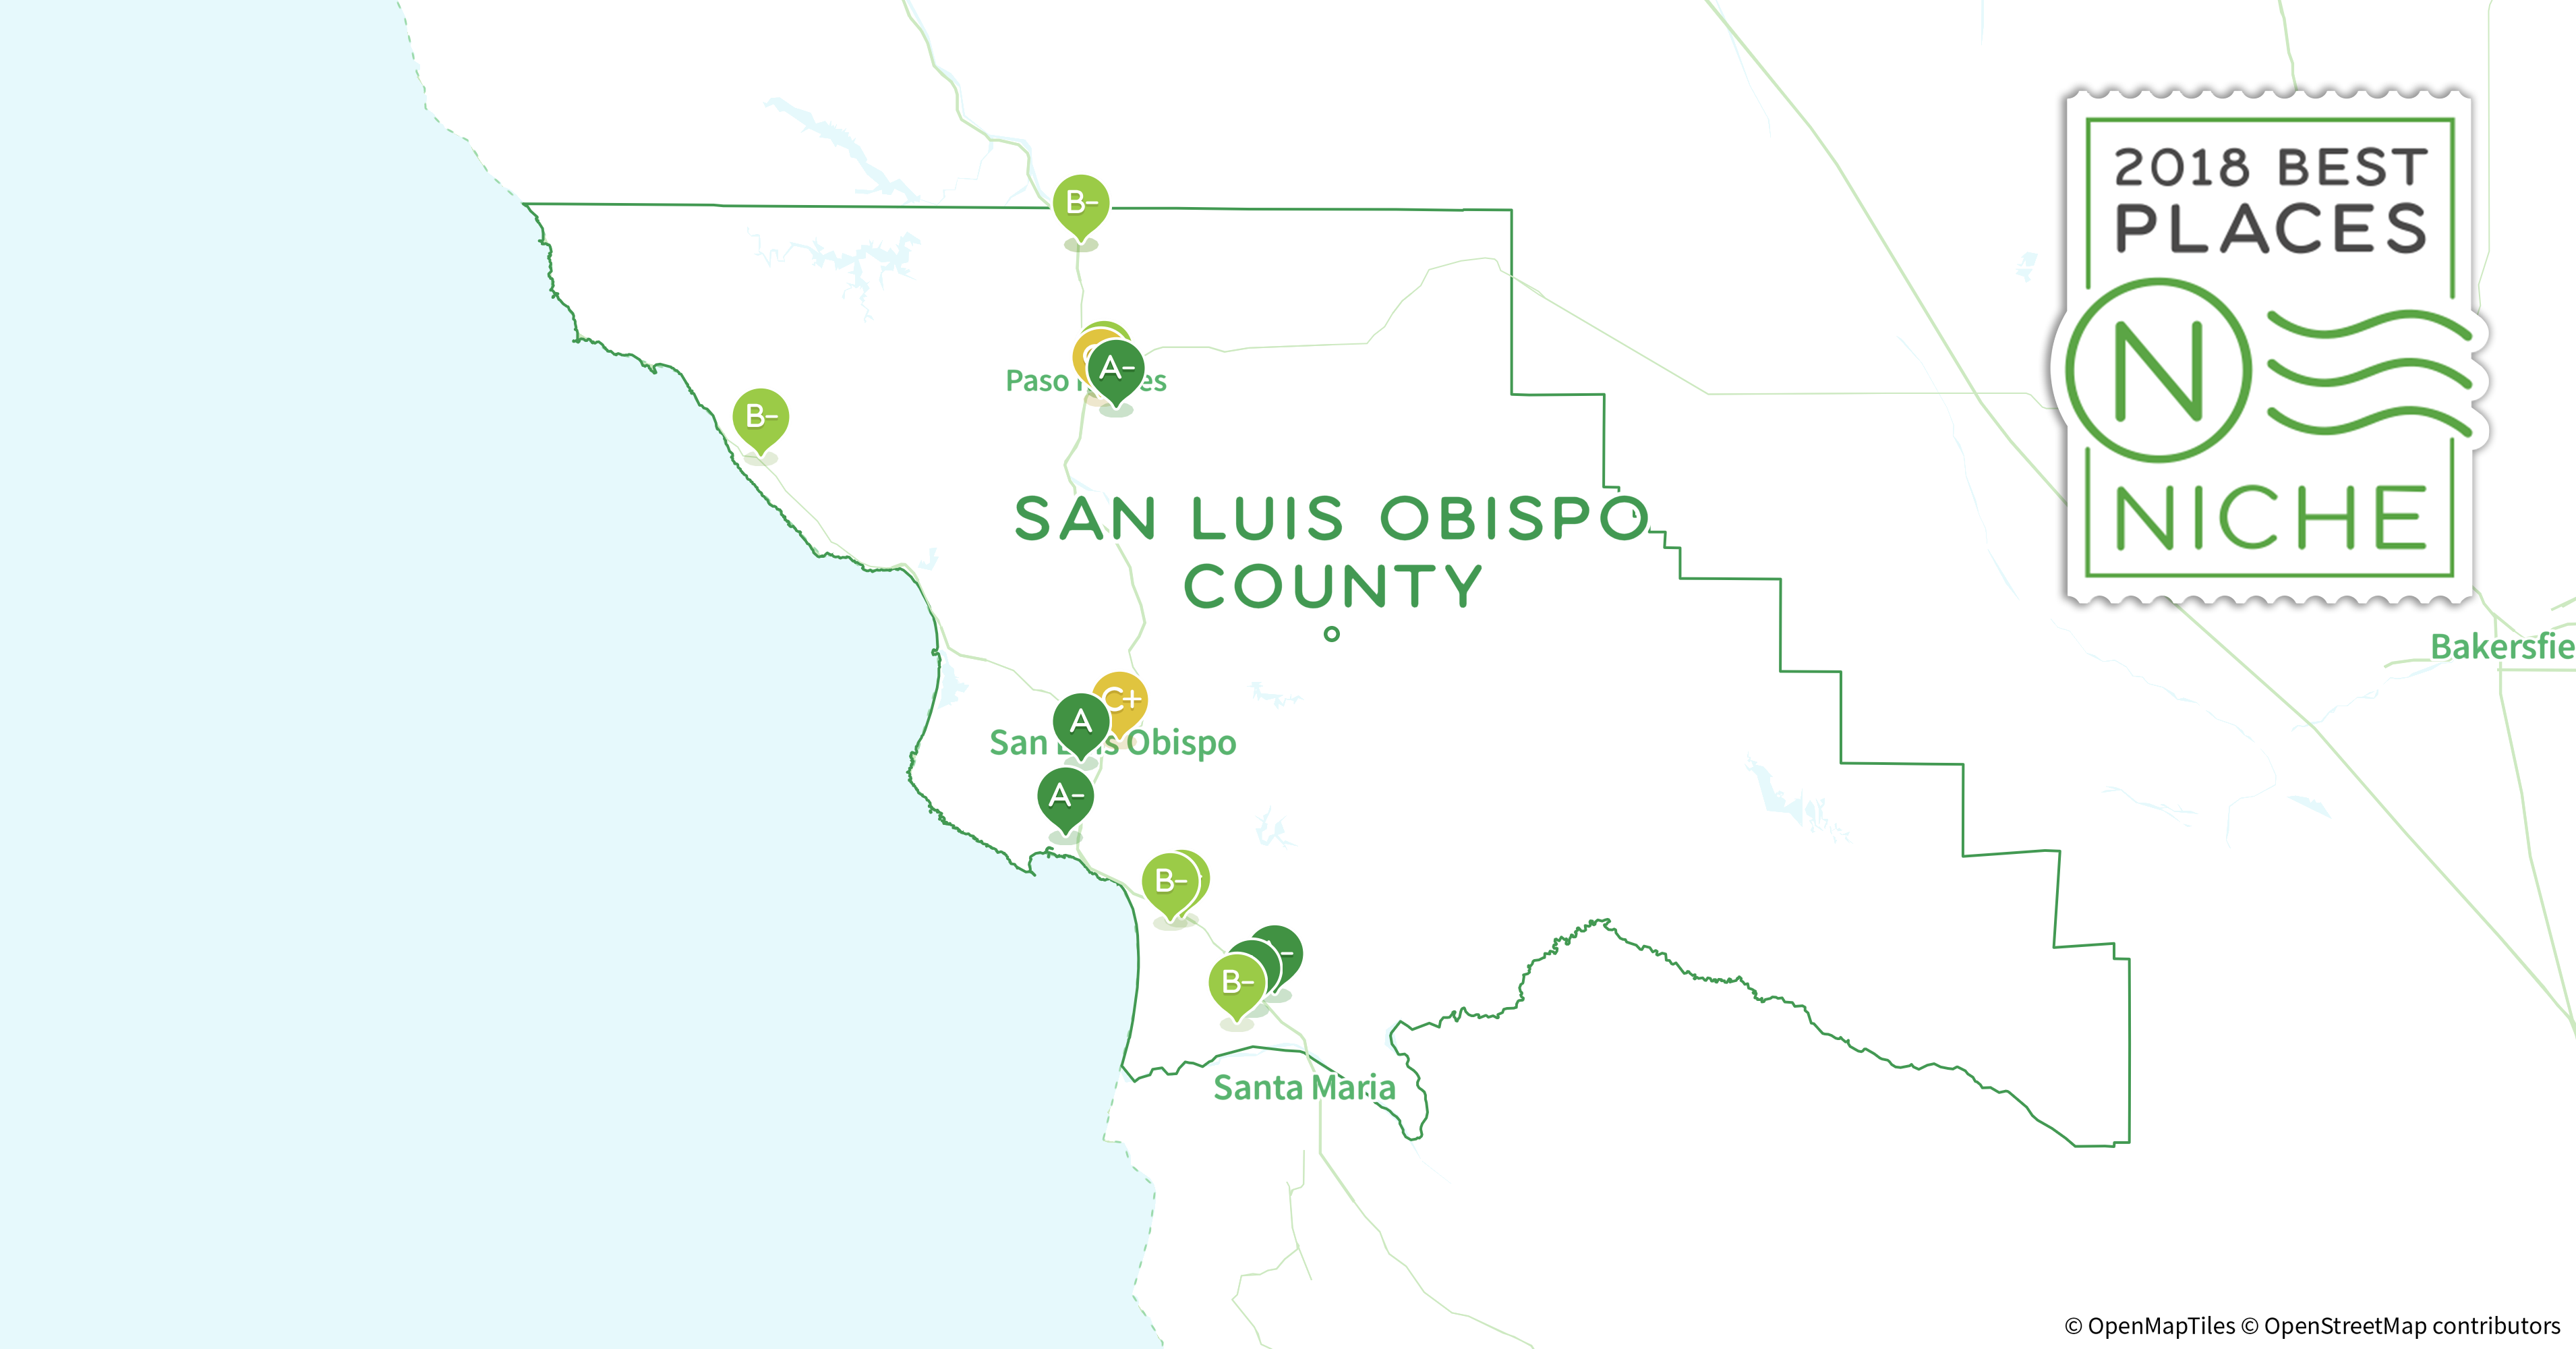 2018 Best Places to Buy a House in San Luis Obispo County, CA - Niche